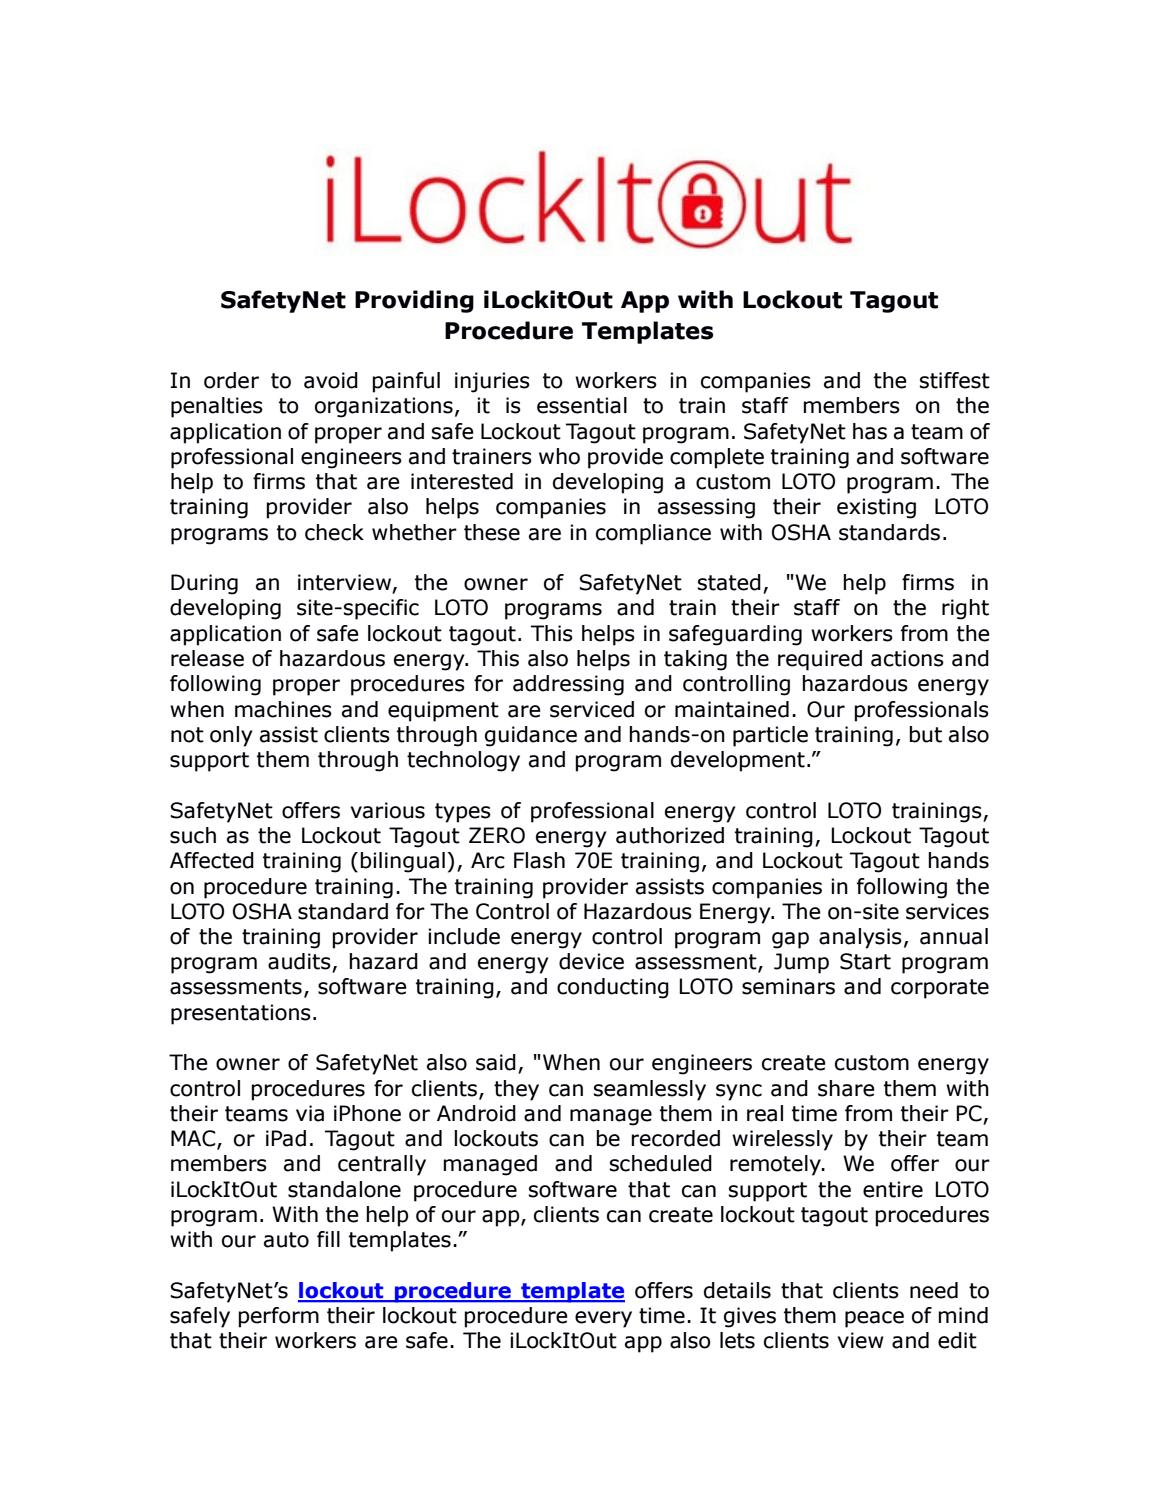 safetynet providing ilockitout app with lockout tagout procedure templates by ilockitout issuu. Black Bedroom Furniture Sets. Home Design Ideas